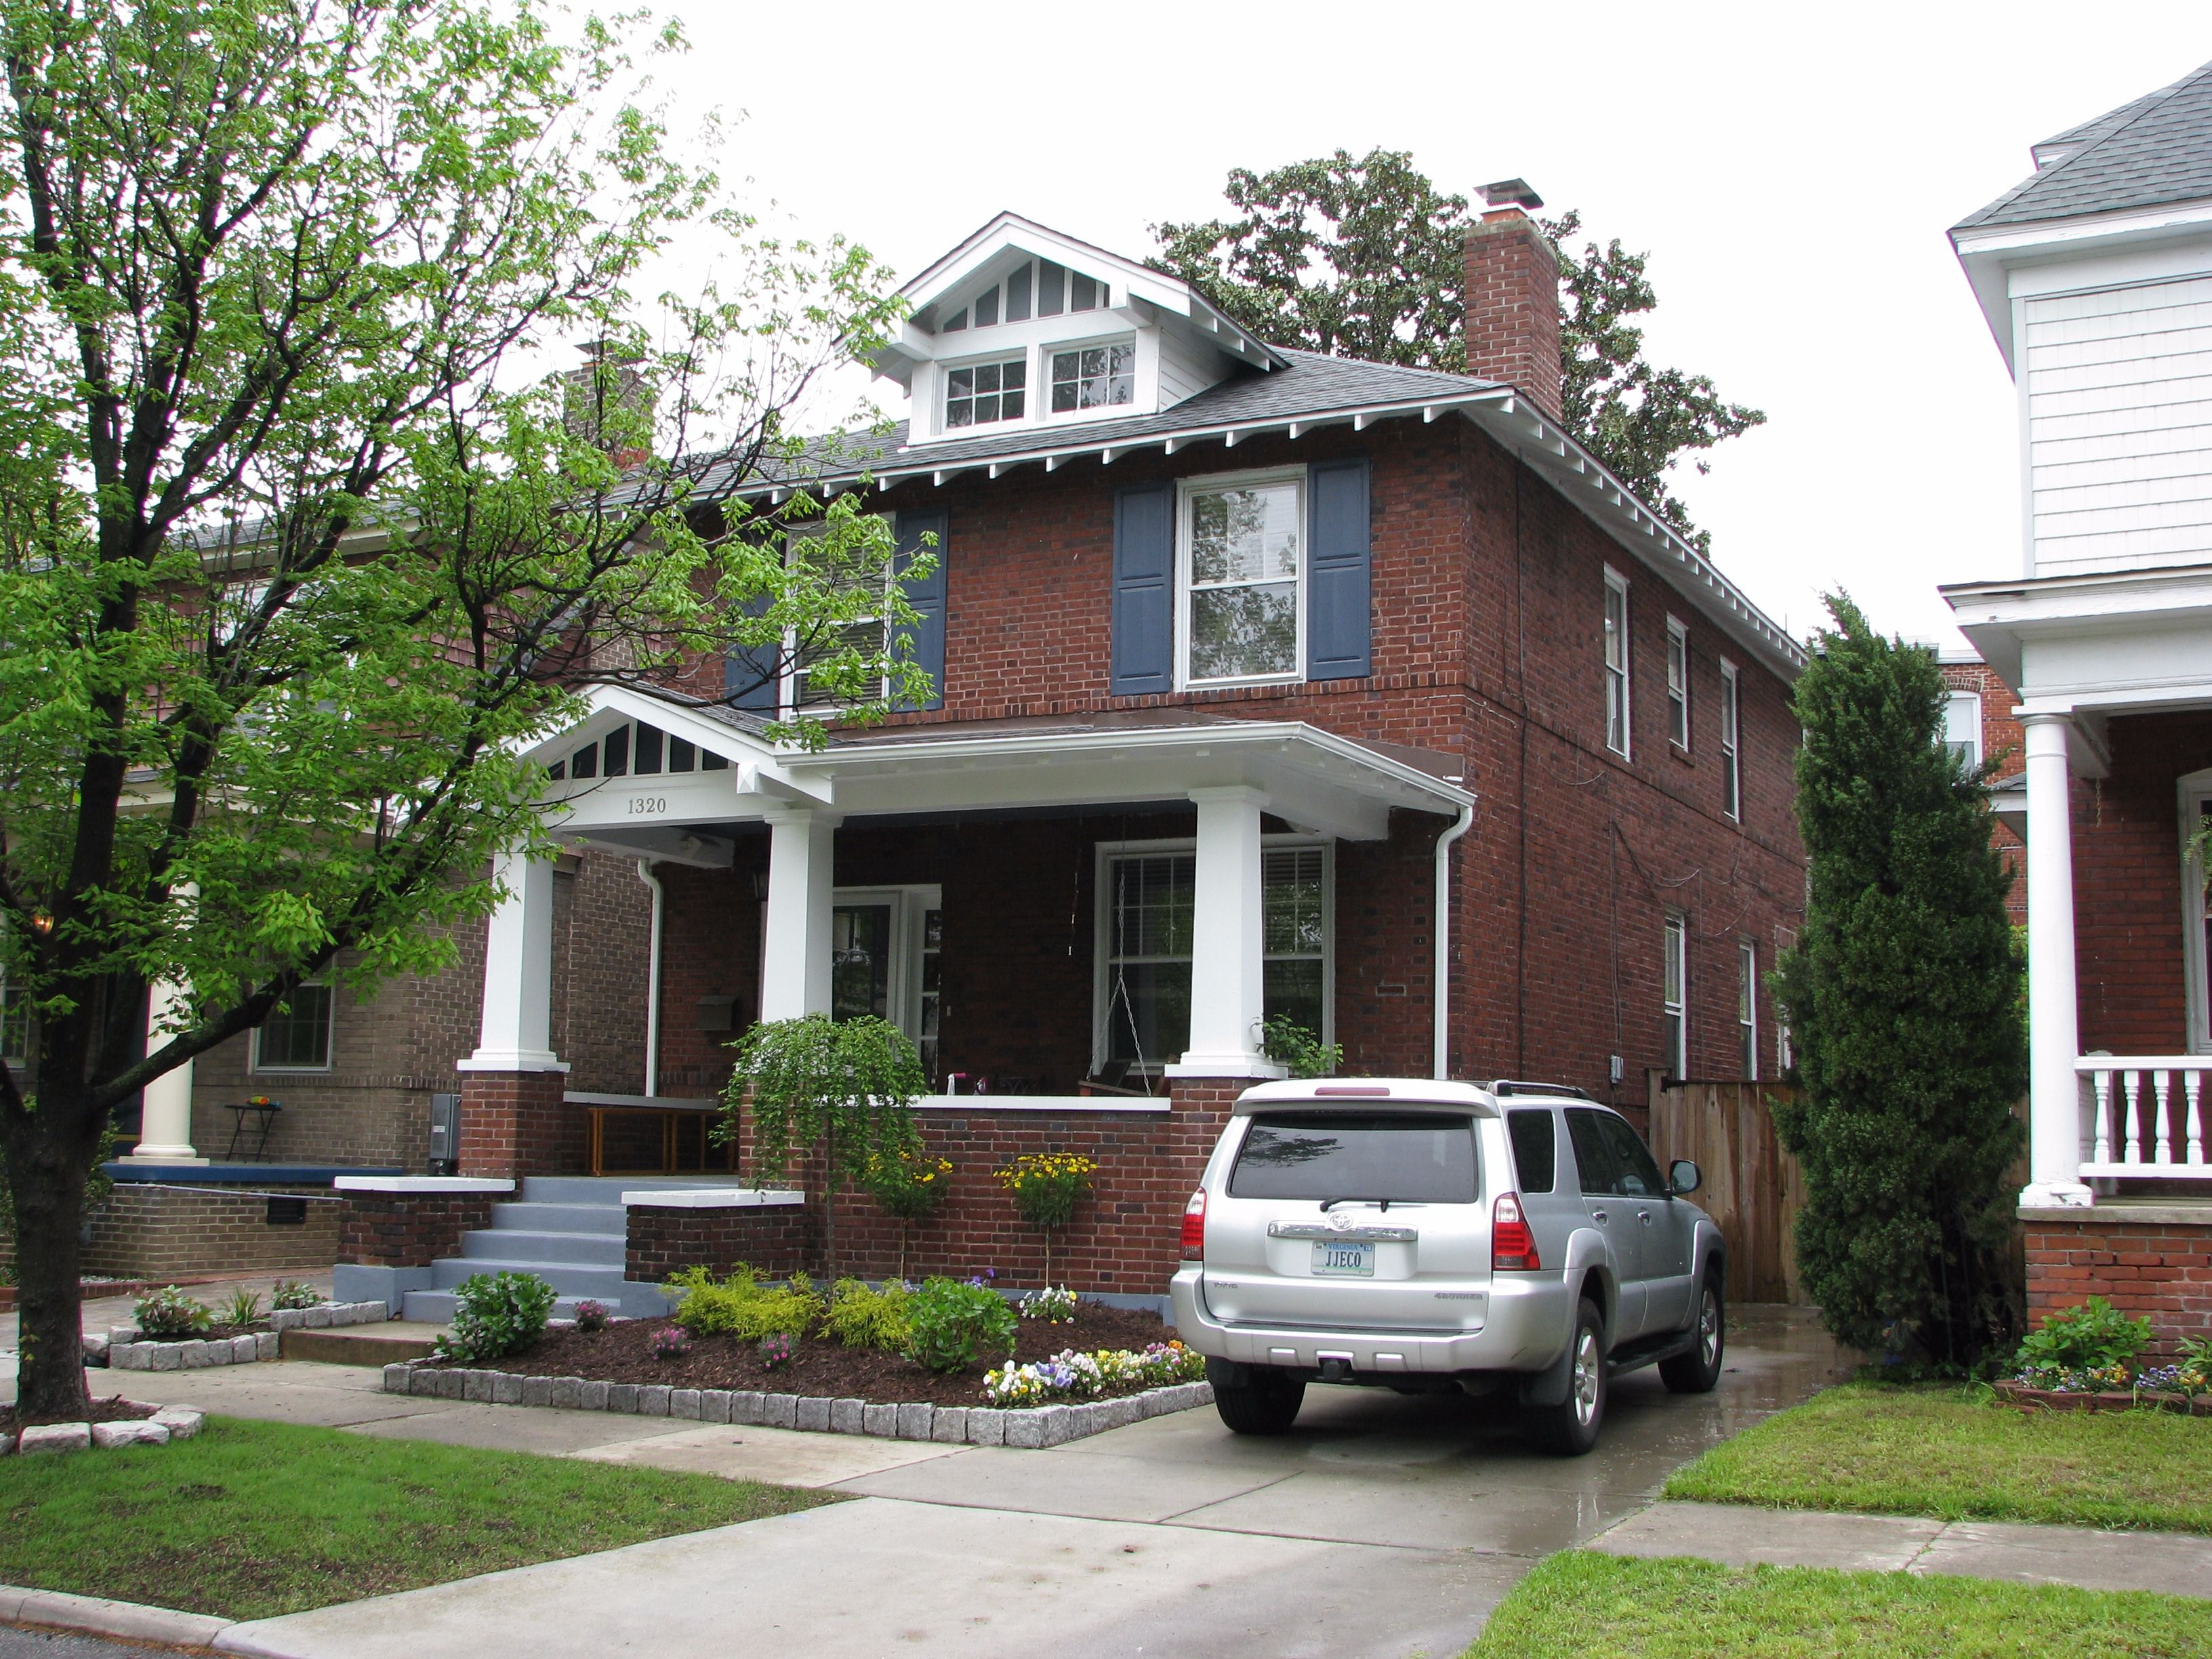 Family Home: The Bergers lived at 1320 Stockley Gardens in Ghent.